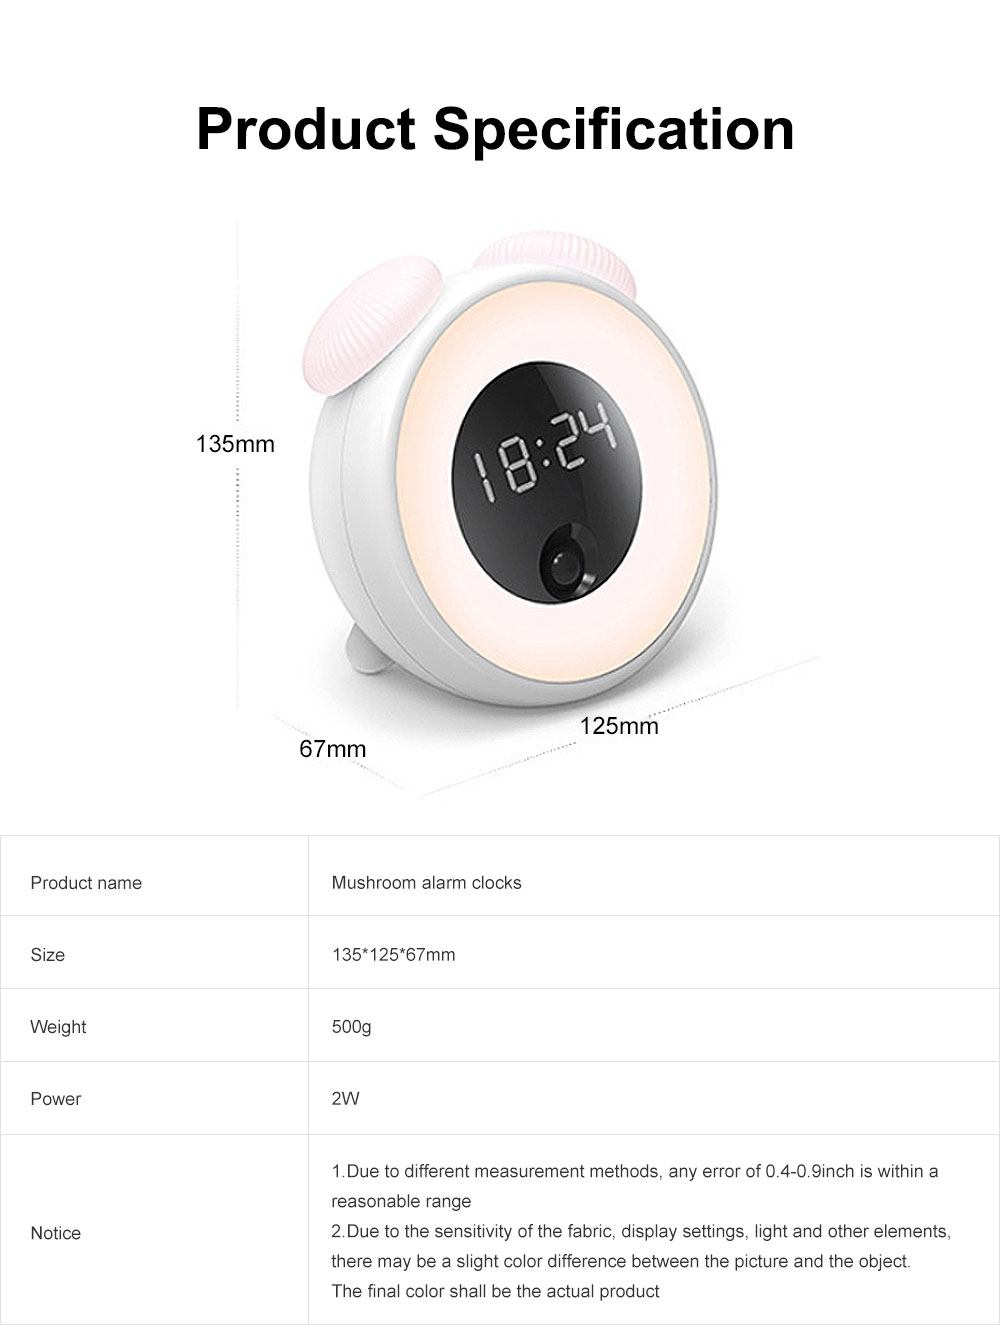 Mushroom Alarm Clocks Digital Alarm Clock Multifunctional Wake Up Intelligent Recognition Sensor Morning Clock with Night Lamp Light Best Gifts for Kids 7